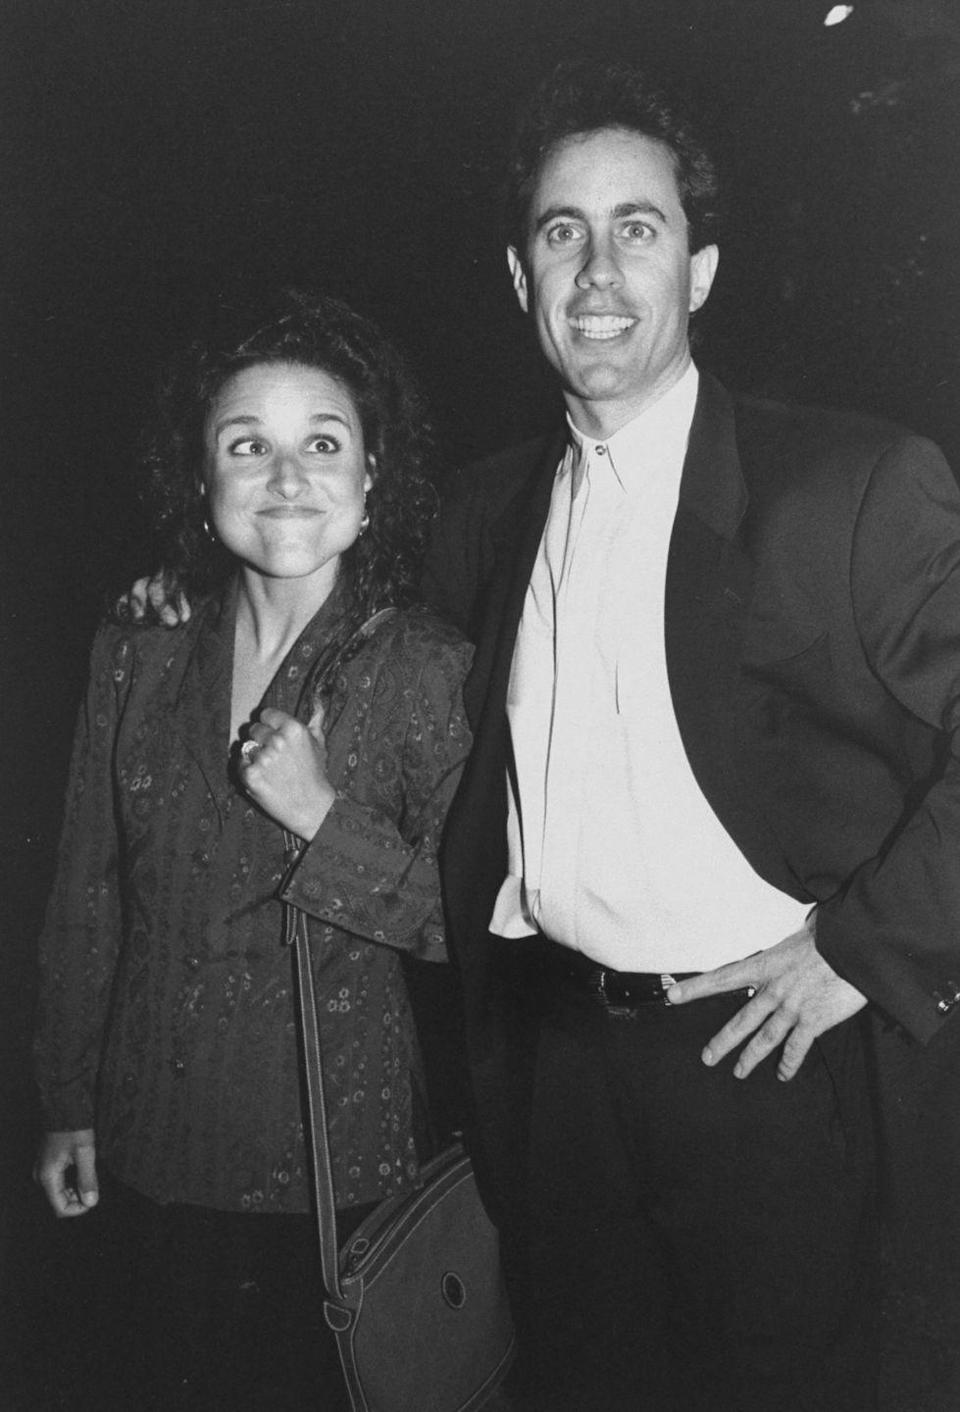 <p><em>Seinfeld </em>costars, Louis-Dreyfus and Seinfeld attend an NBC network party together. </p>